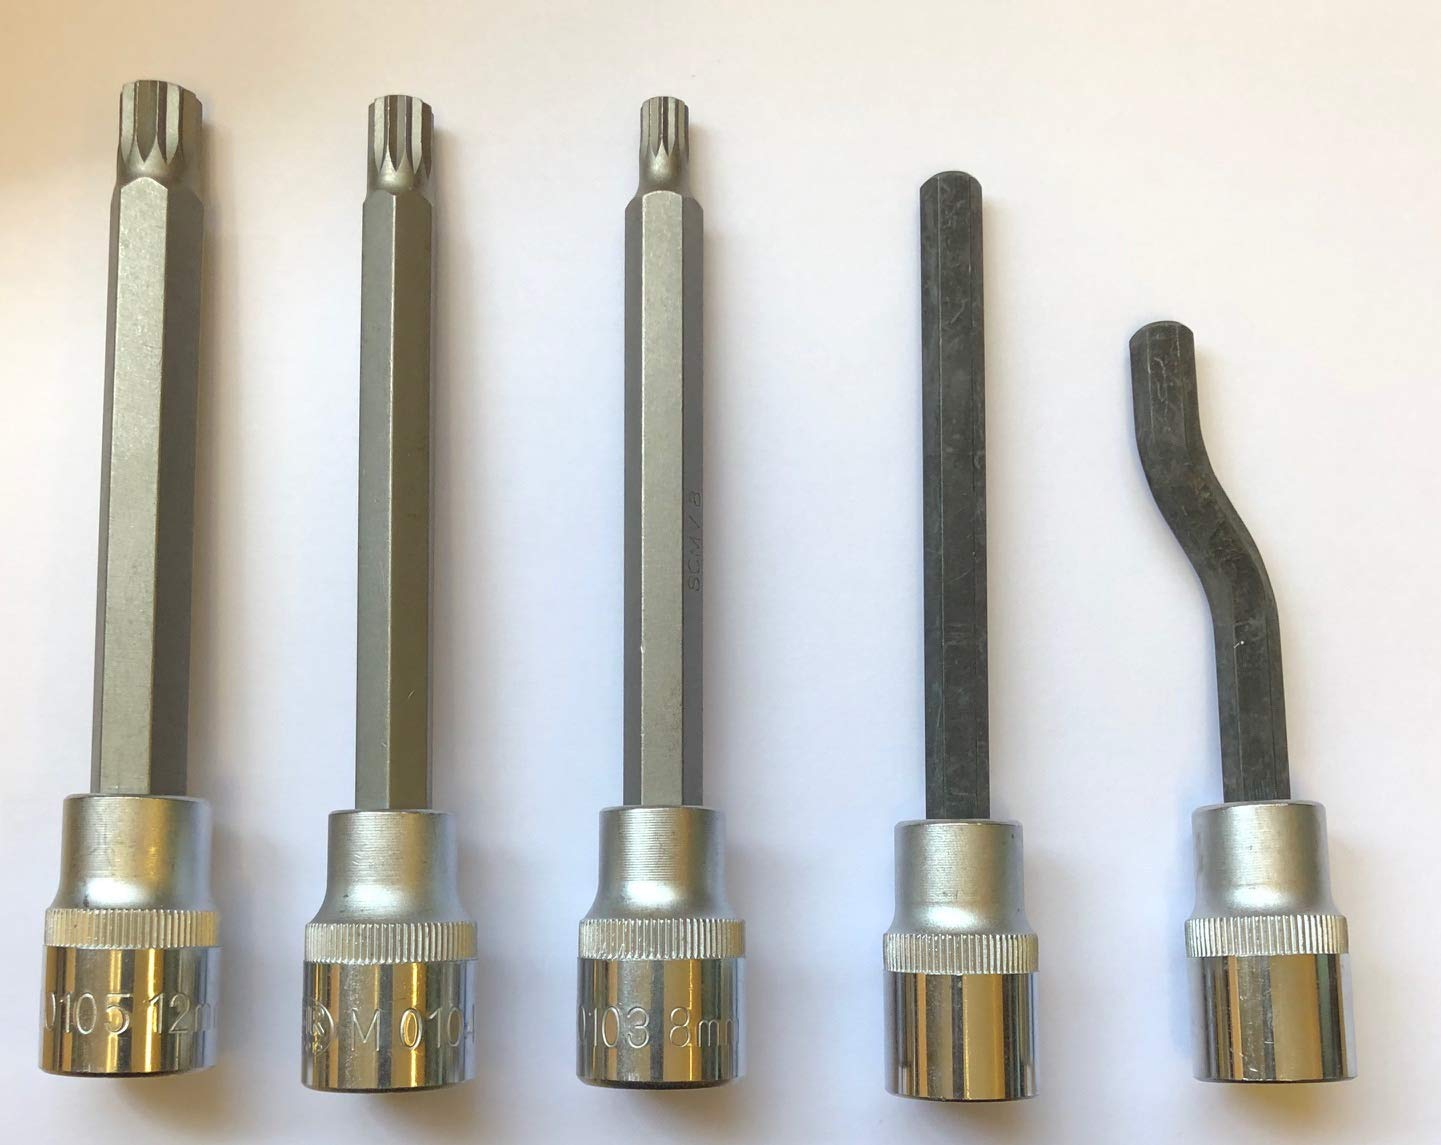 ZDMak 5 Piece Head Bolt Drivers